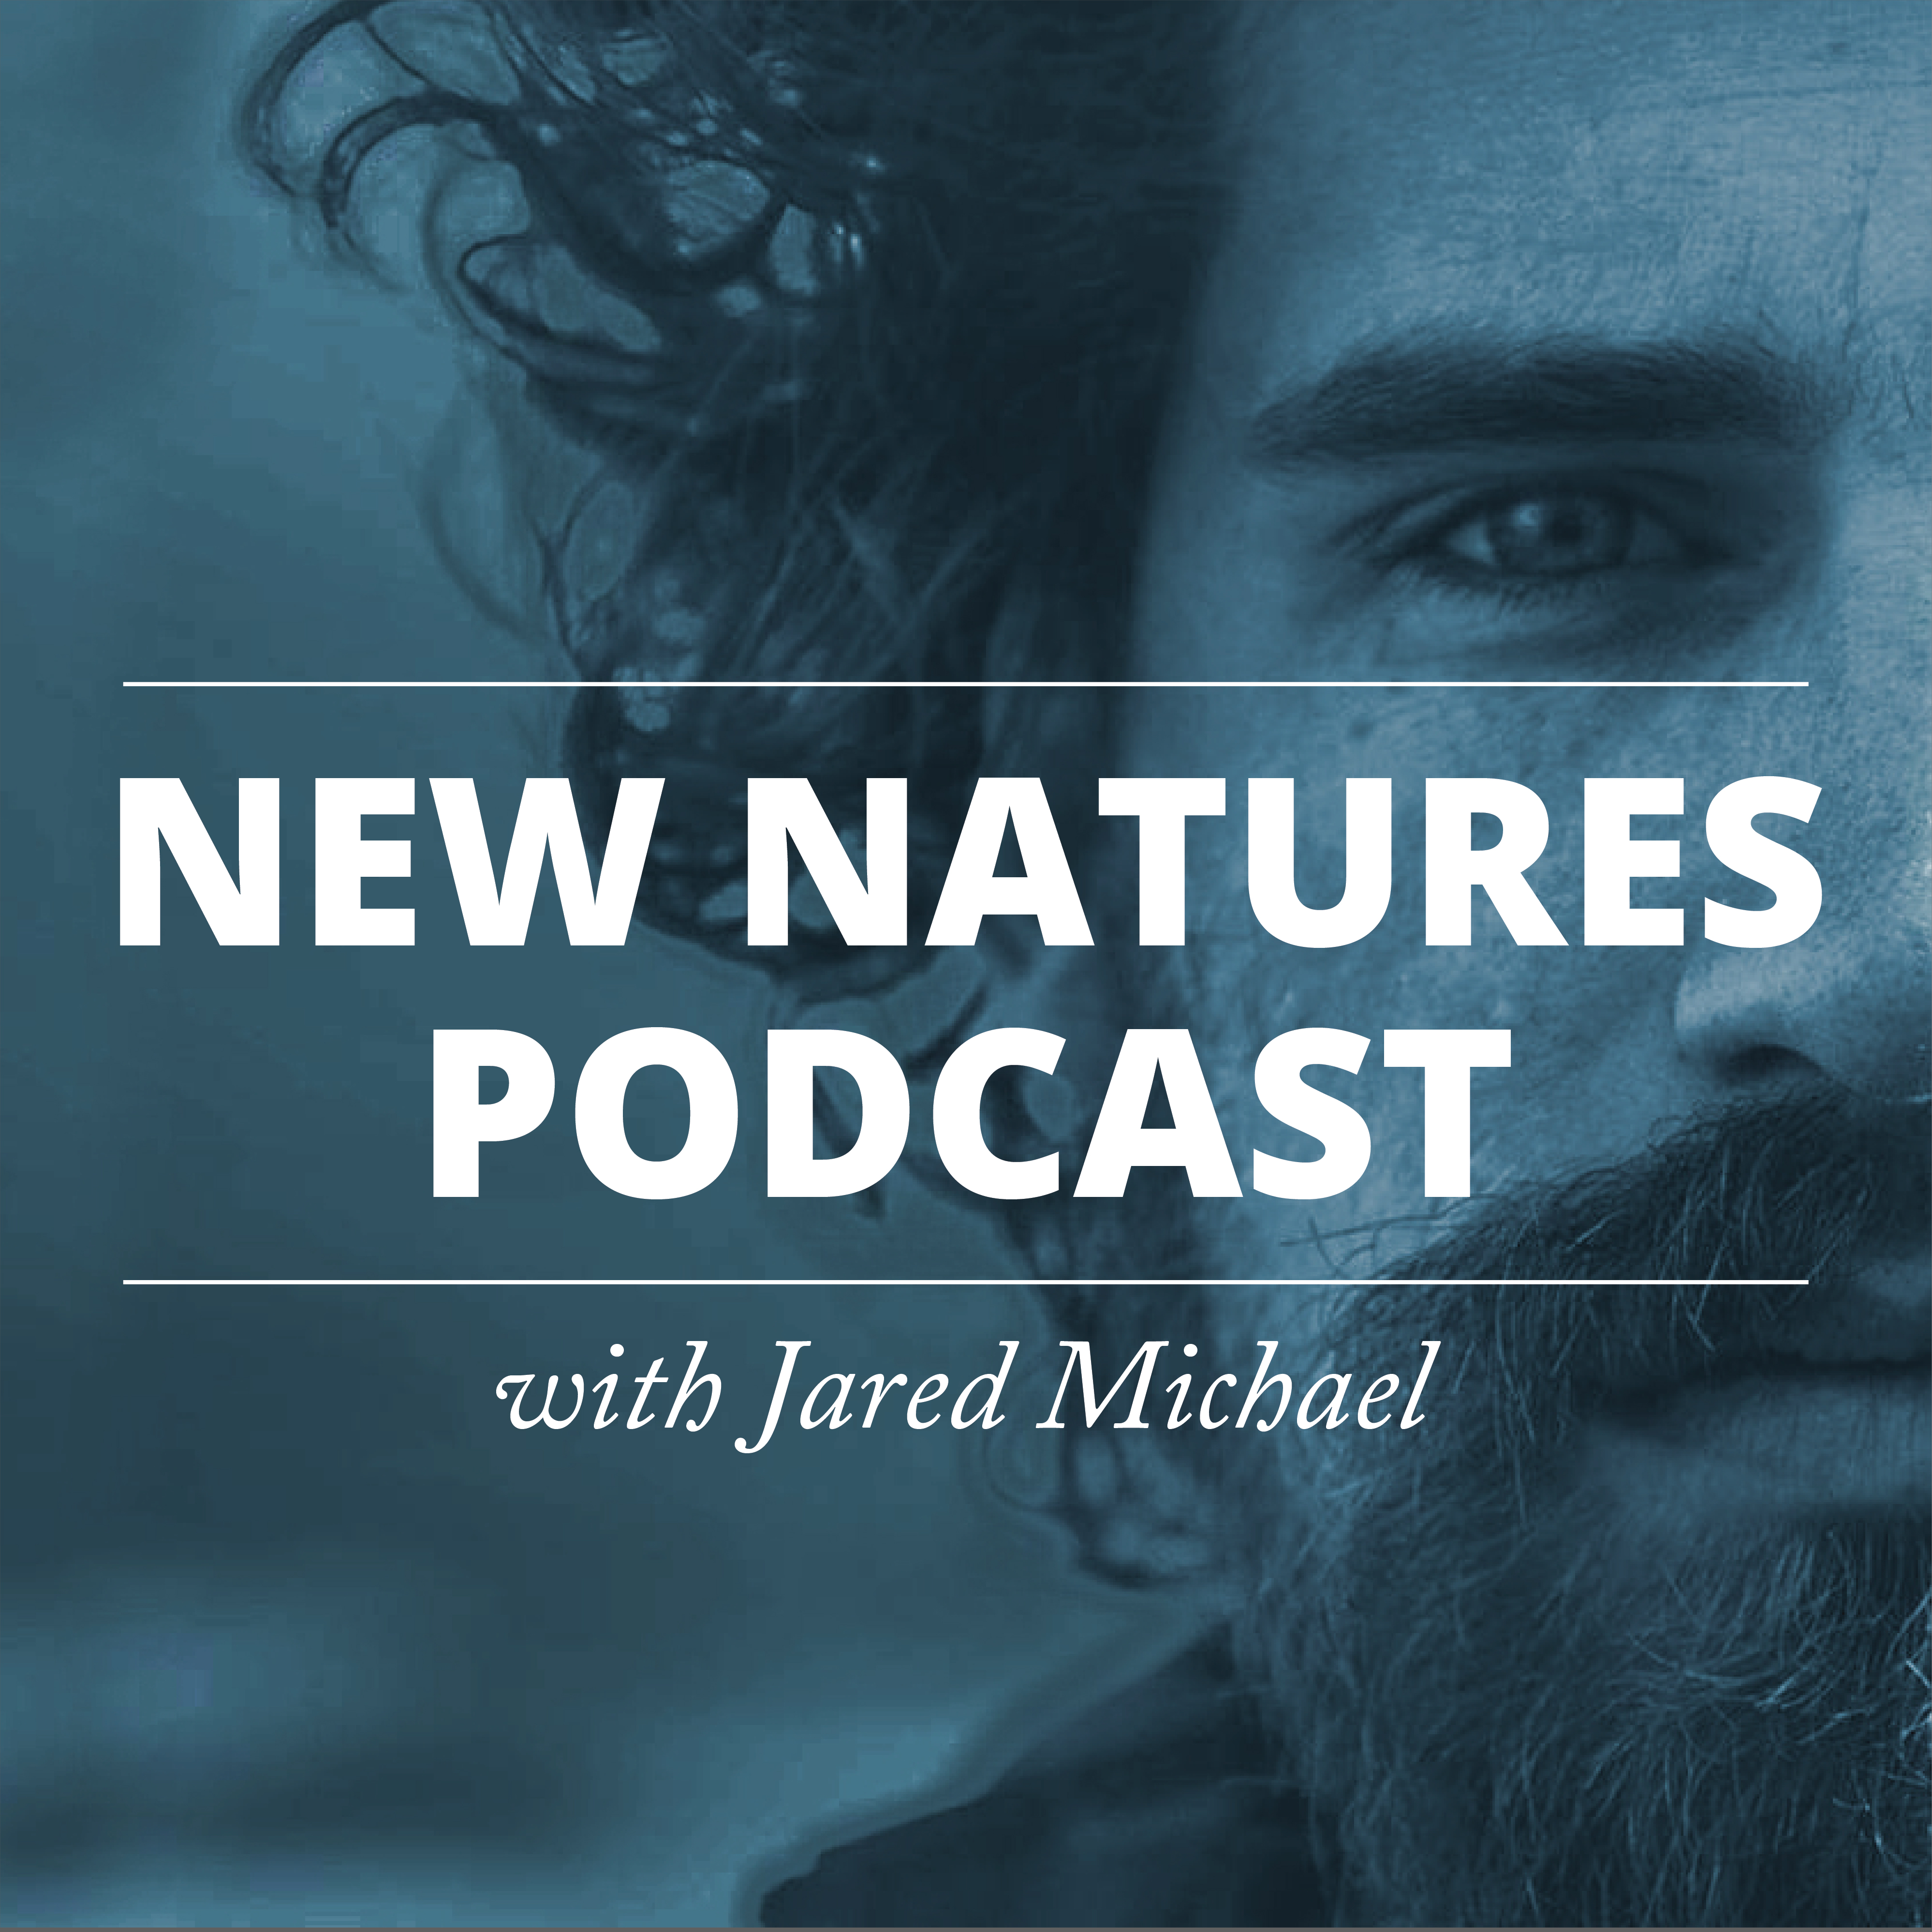 New Nature's Podcast